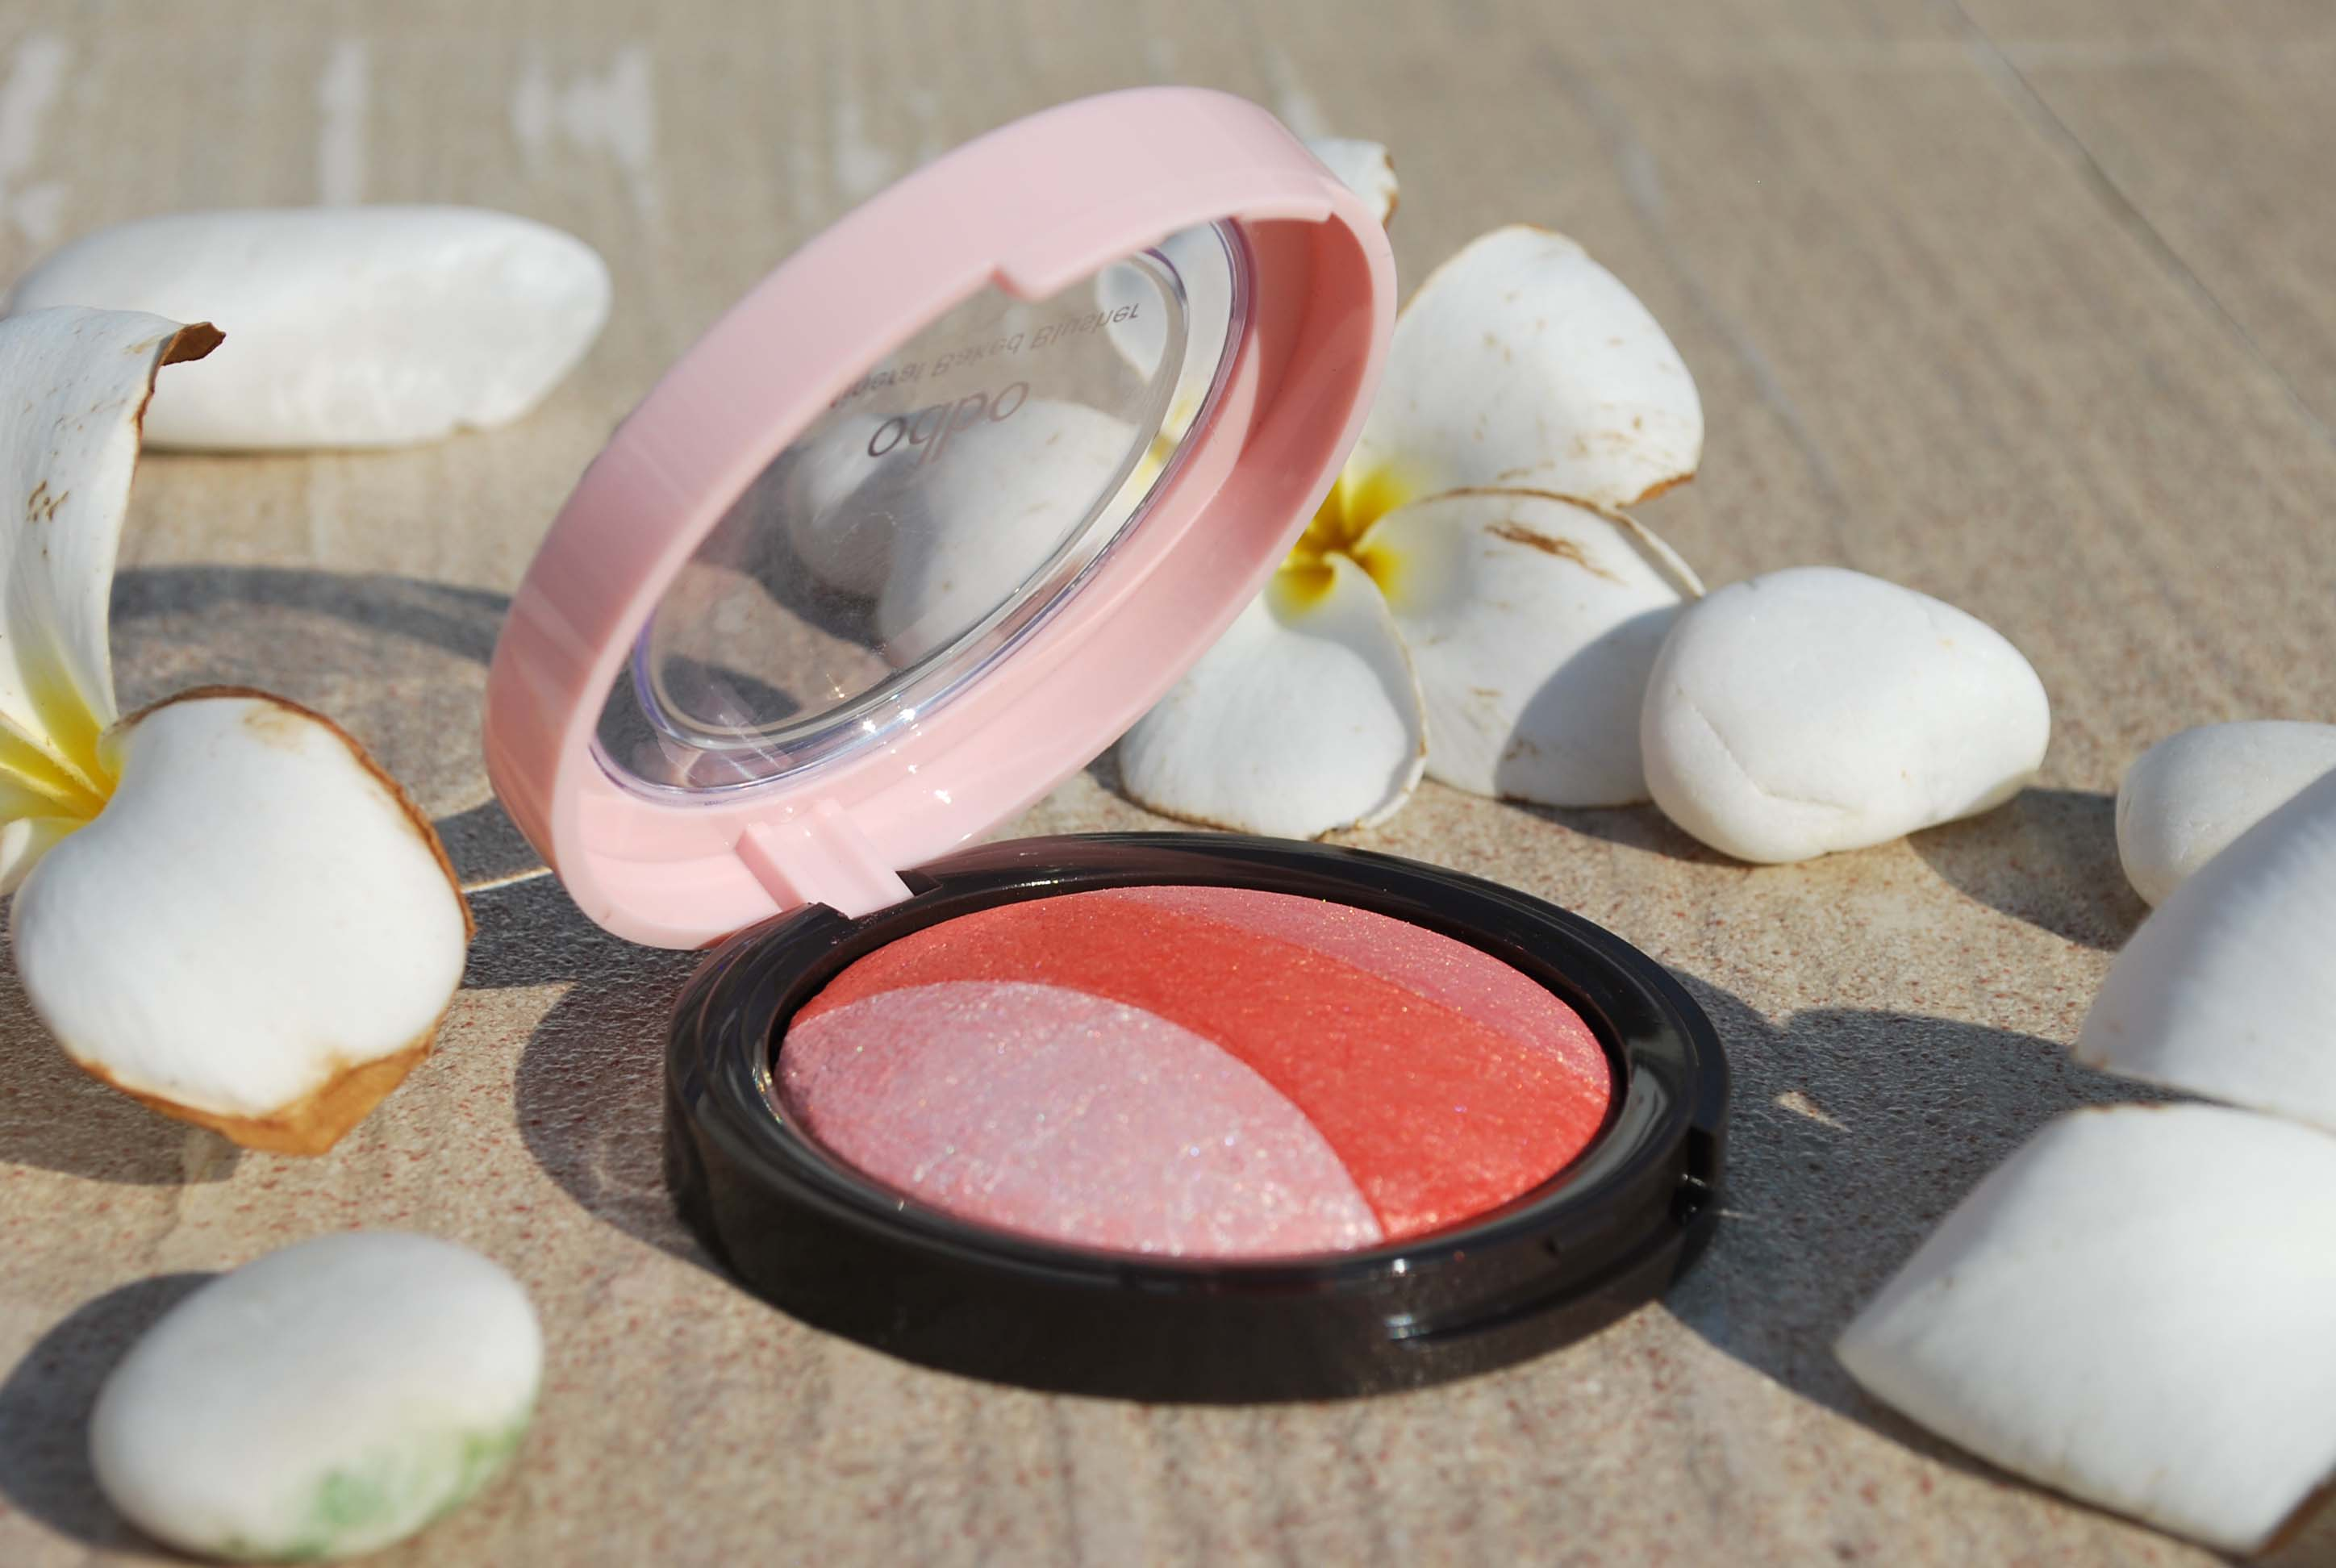 trio baked blush odbo thai make up